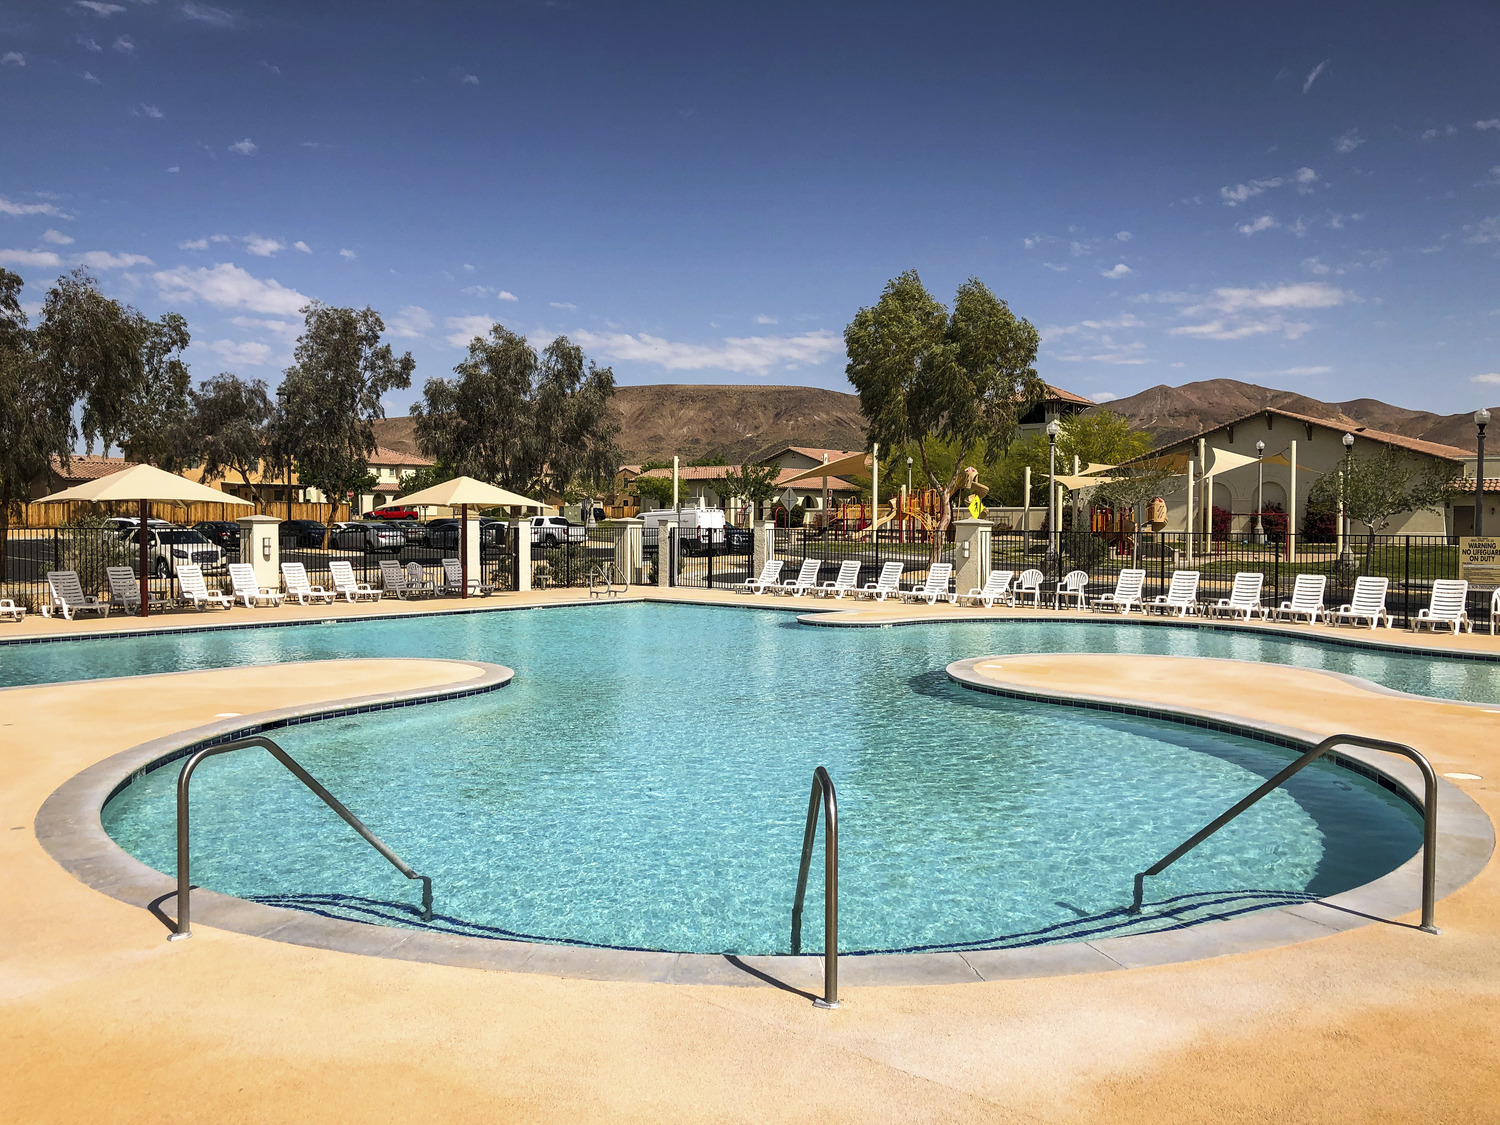 CBG builds The Villages at Fort Irwin, a 807 New Military Homes and 200 Senior Unaccompanied Housing Units in Fort Irwin, CA - Image #5